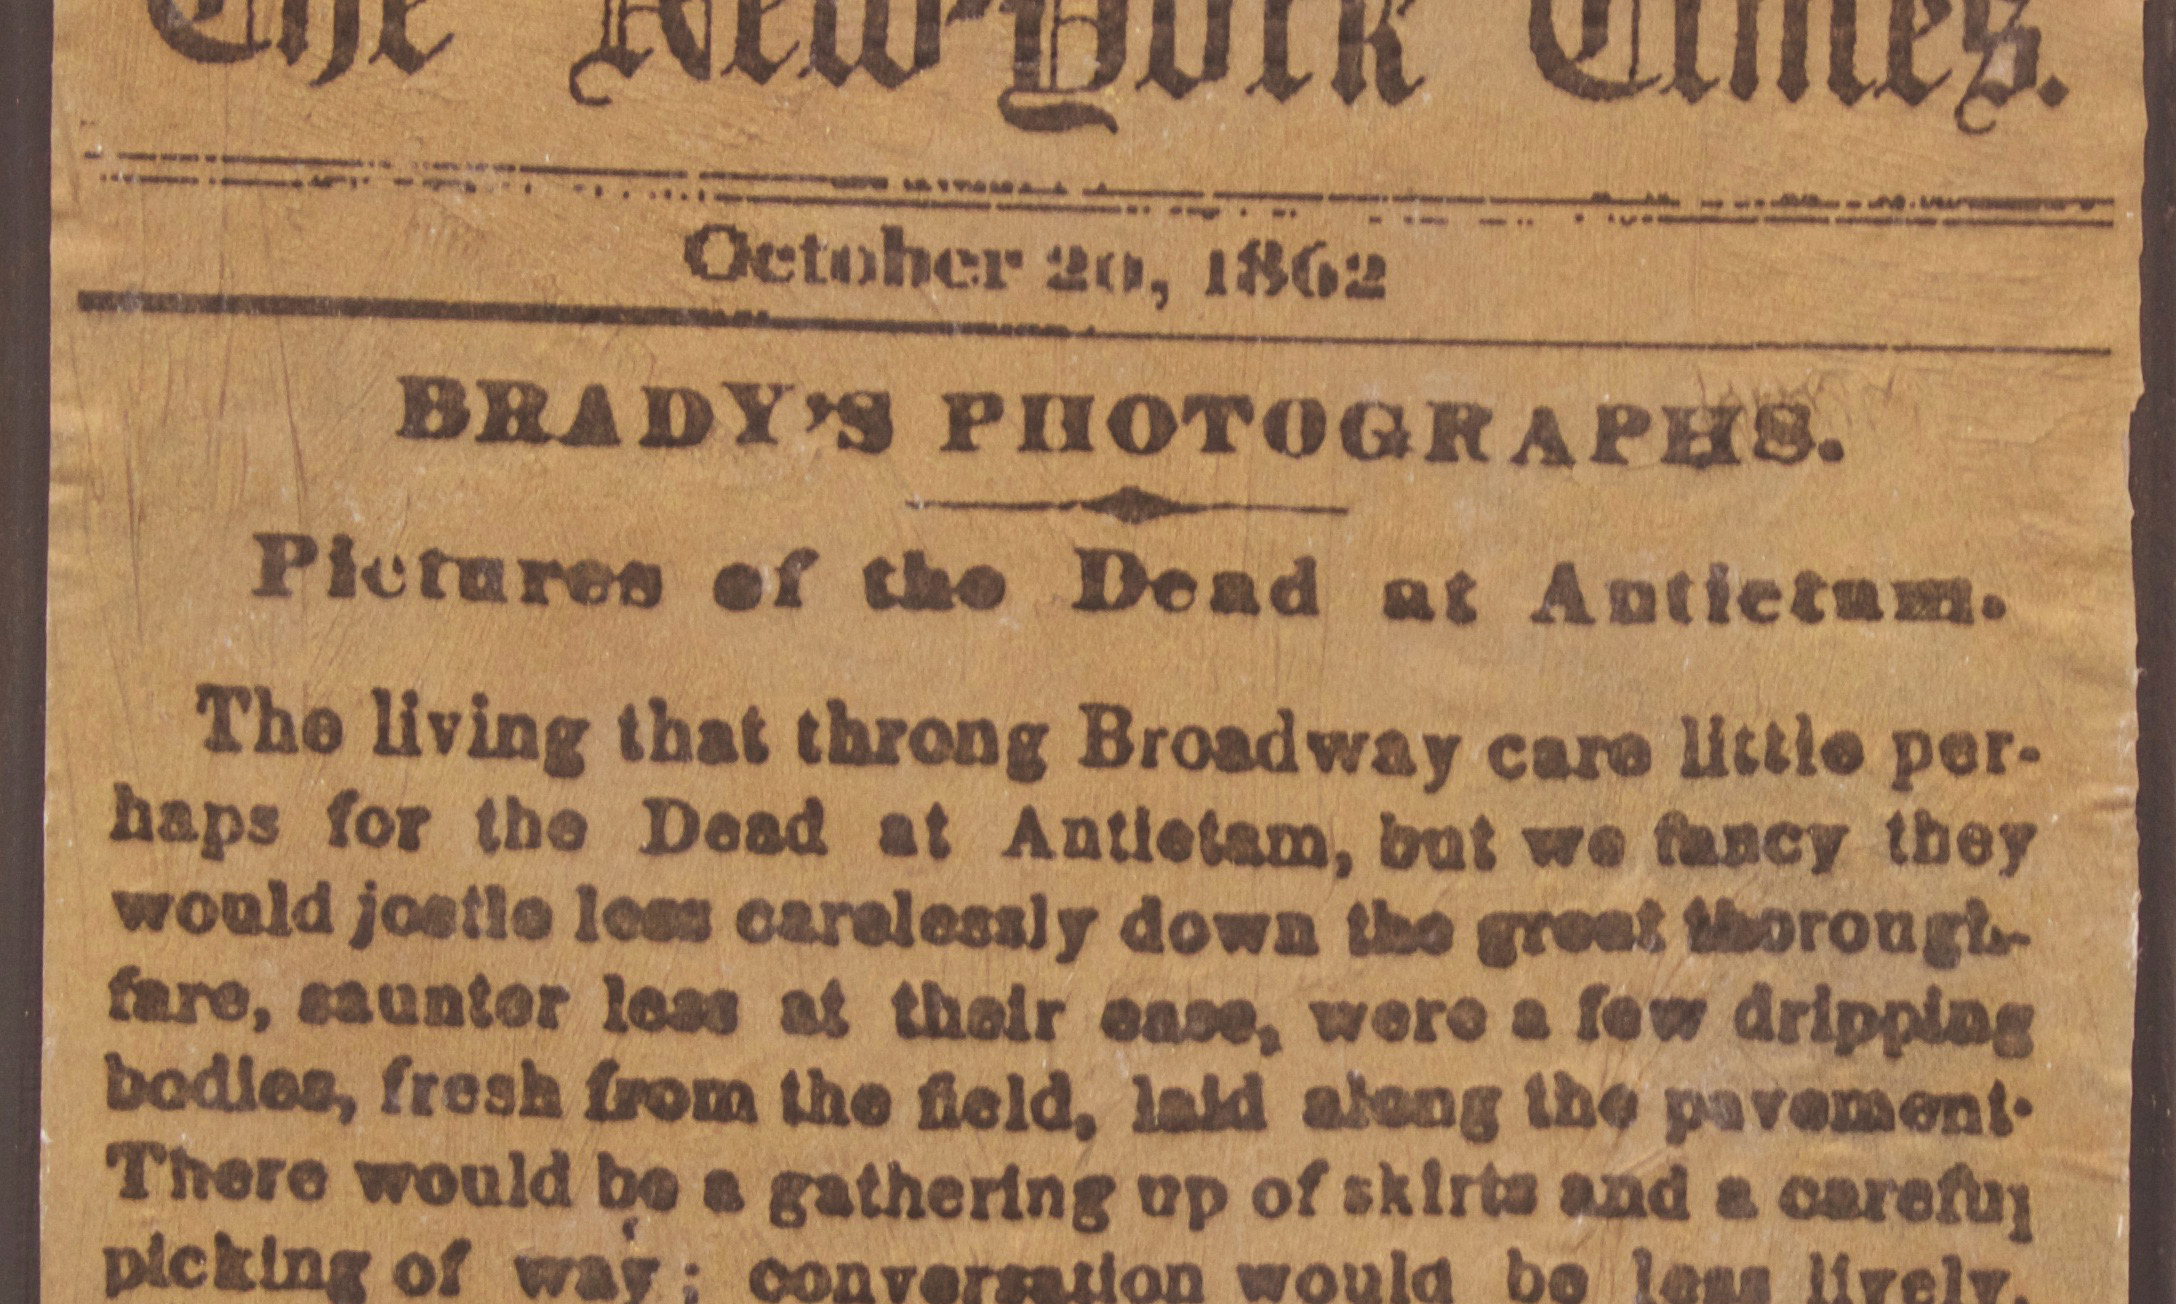 """(detail) """"The New York Times, October 20, 1862: Pictures of the Dead at Antietam,"""" 2017, Ink Transfer and Spray Paint on Panel, 9.25""""x 24"""" (each)"""